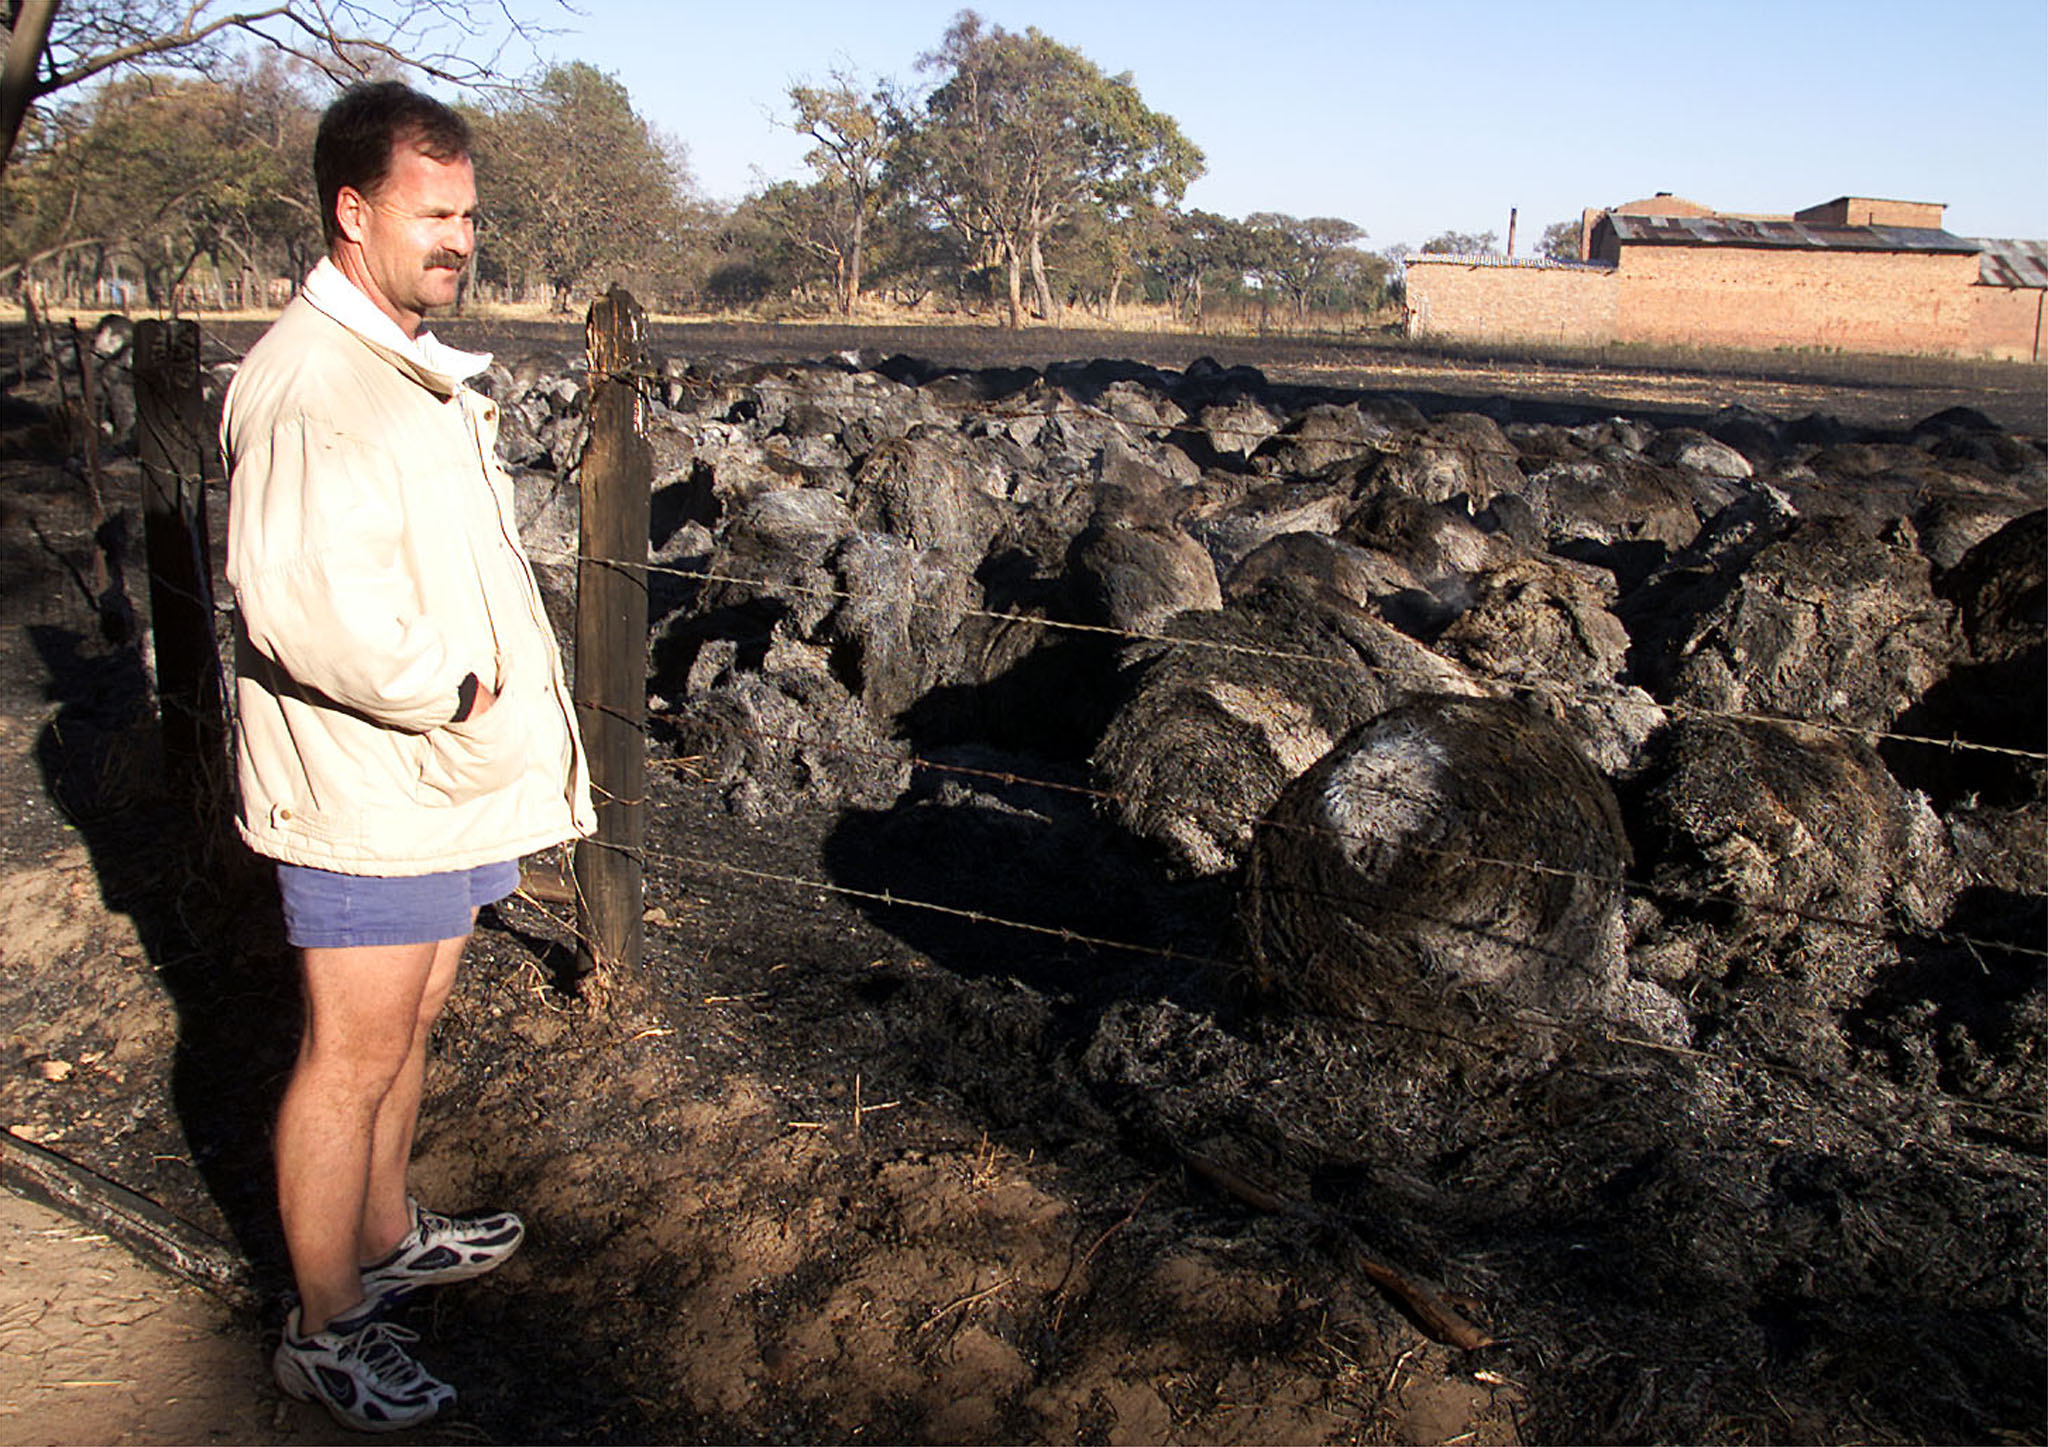 Zimbabwean farmer Ian Cochrane from the Karoi district 200 km's north west of Harare looks at burnt hay bales on his Renrock Estates farm September 12, 2002. The hay and a horse were set alight by so called war veterans and land settlers during continued intimidation even though the farm is not listed for resettlement. REUTERS/Howard Burditt HB/AA - RP3DRIDZFUAA